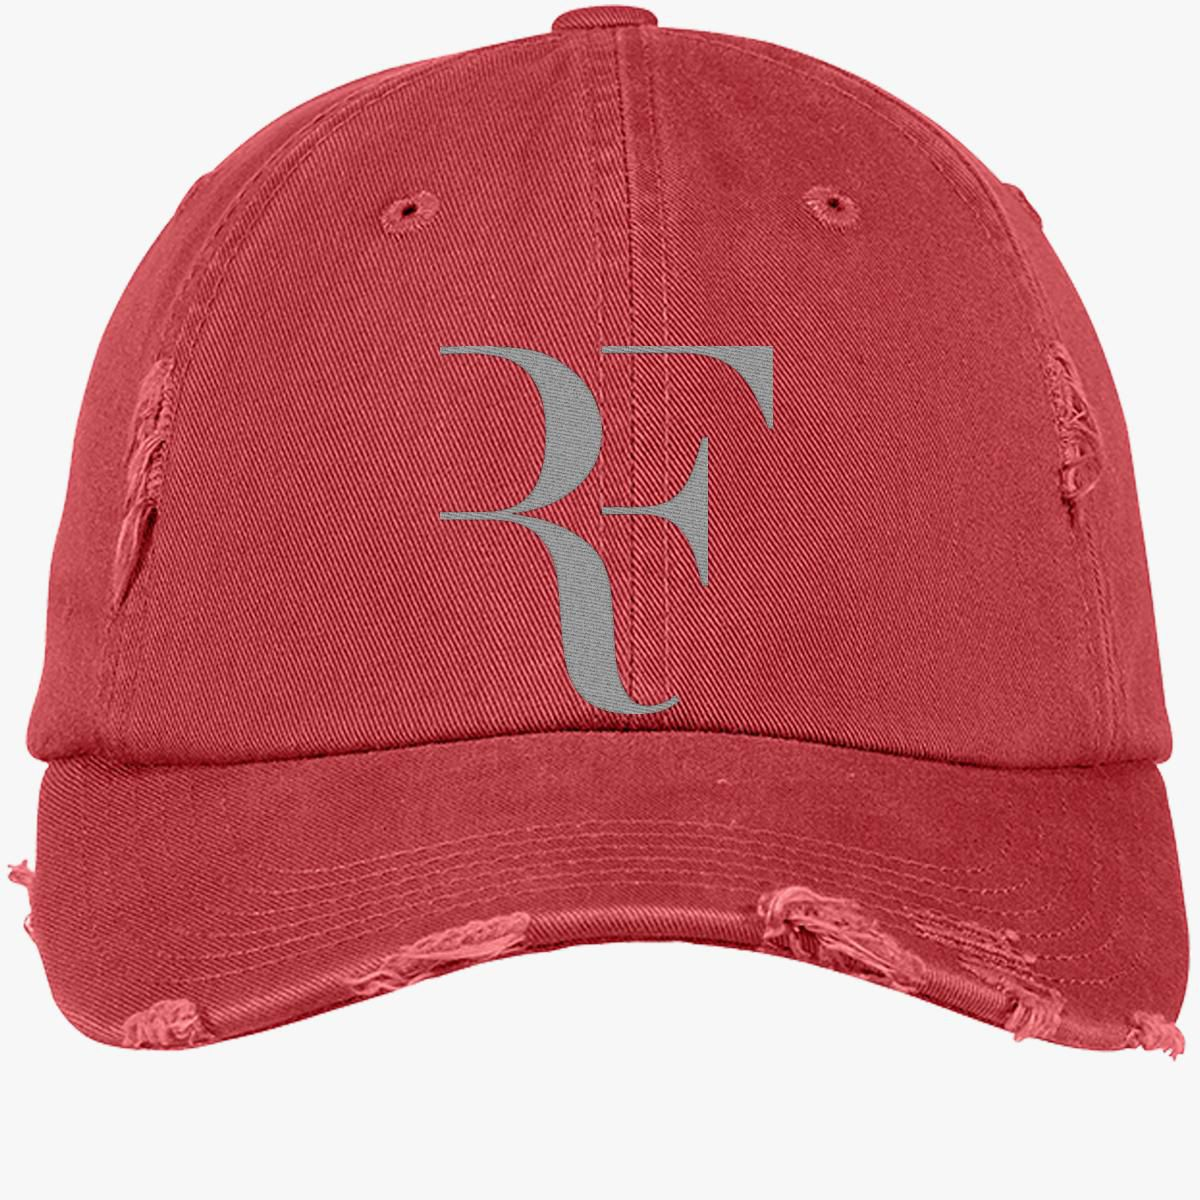 a7d5838705103 Roger FEDERER silver Distressed Cotton Twill Cap (Embroidered ...